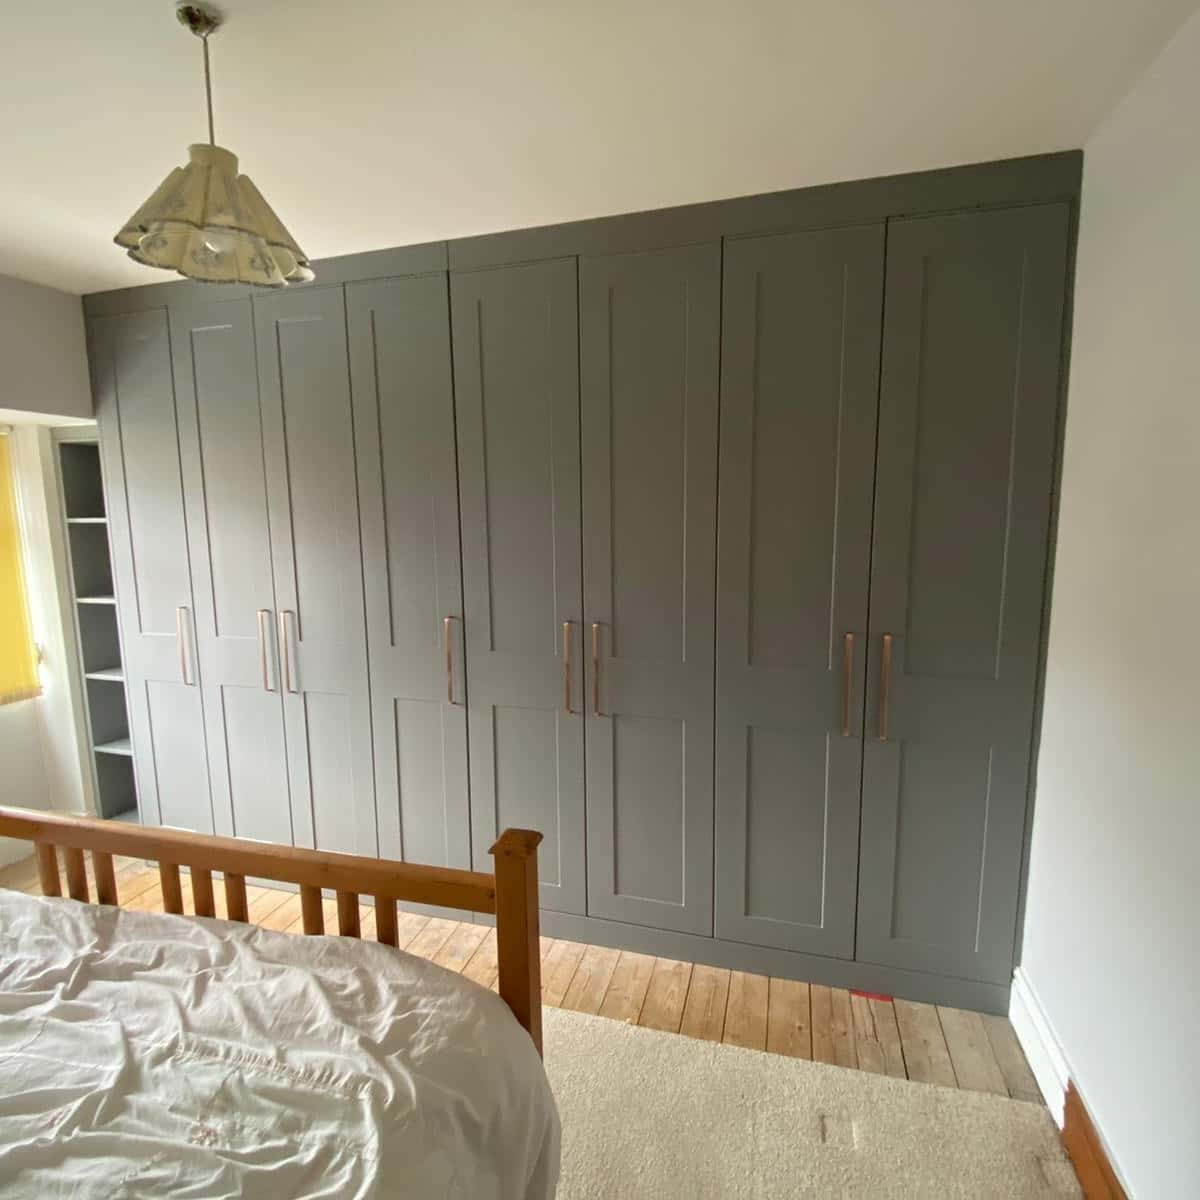 North West Fitted Bedrooms – Why Primo should be your trader of choice for fitted wardrobes!